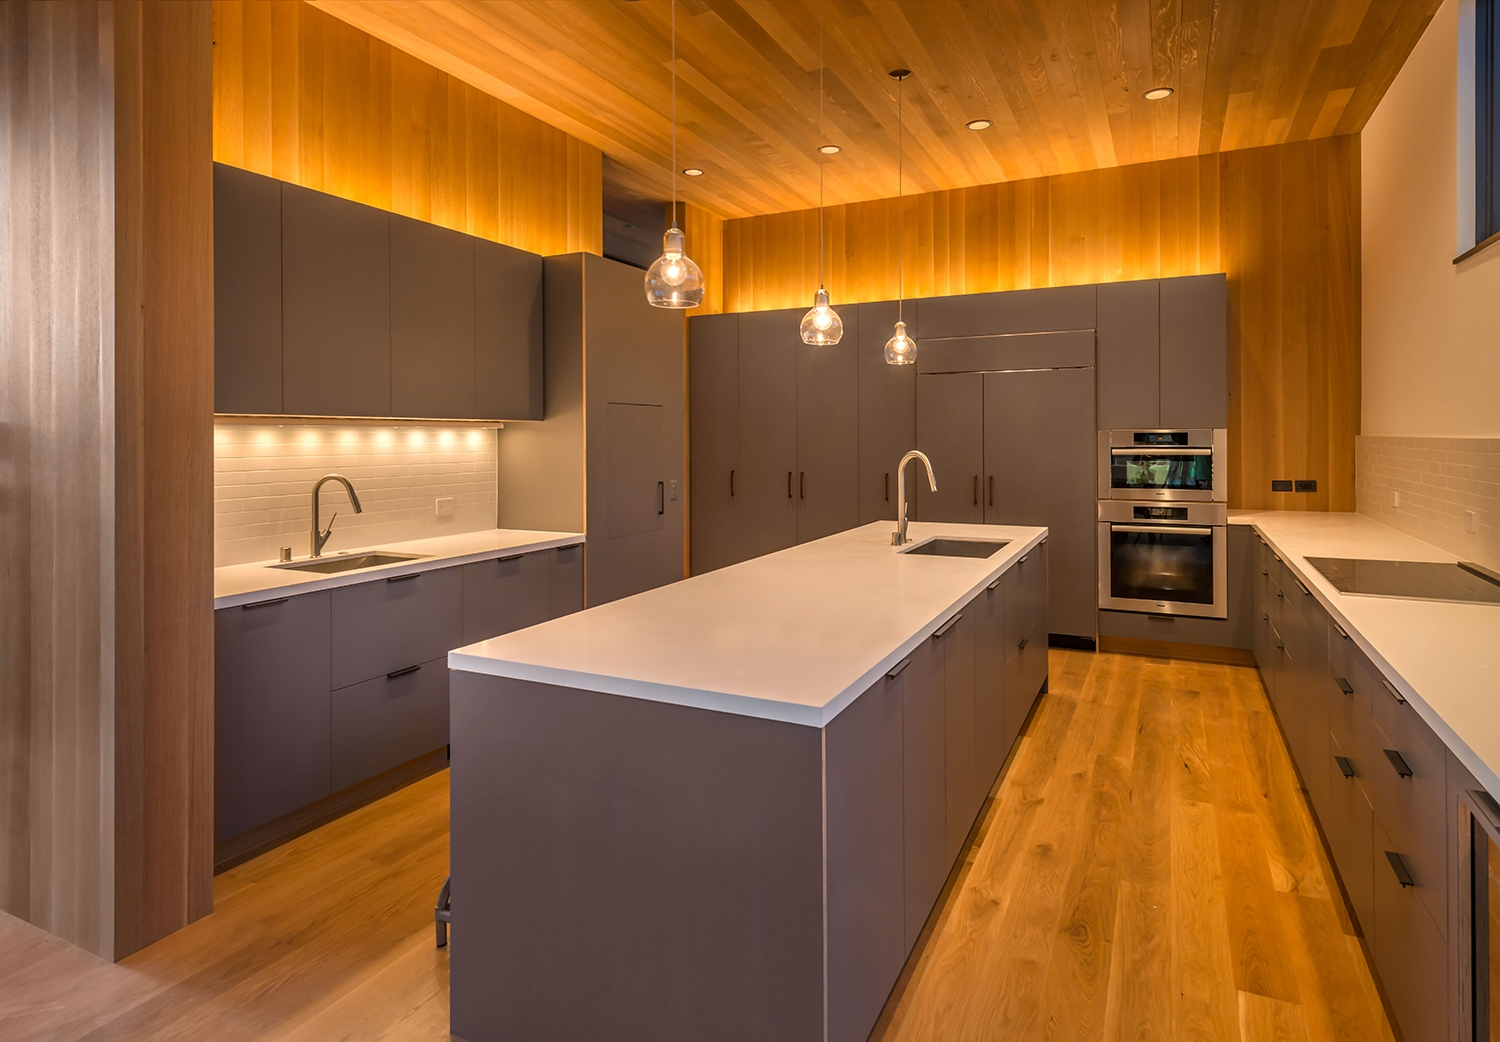 Lot 506_Kitchen_LED Lighting_Wood Paneling.jpg